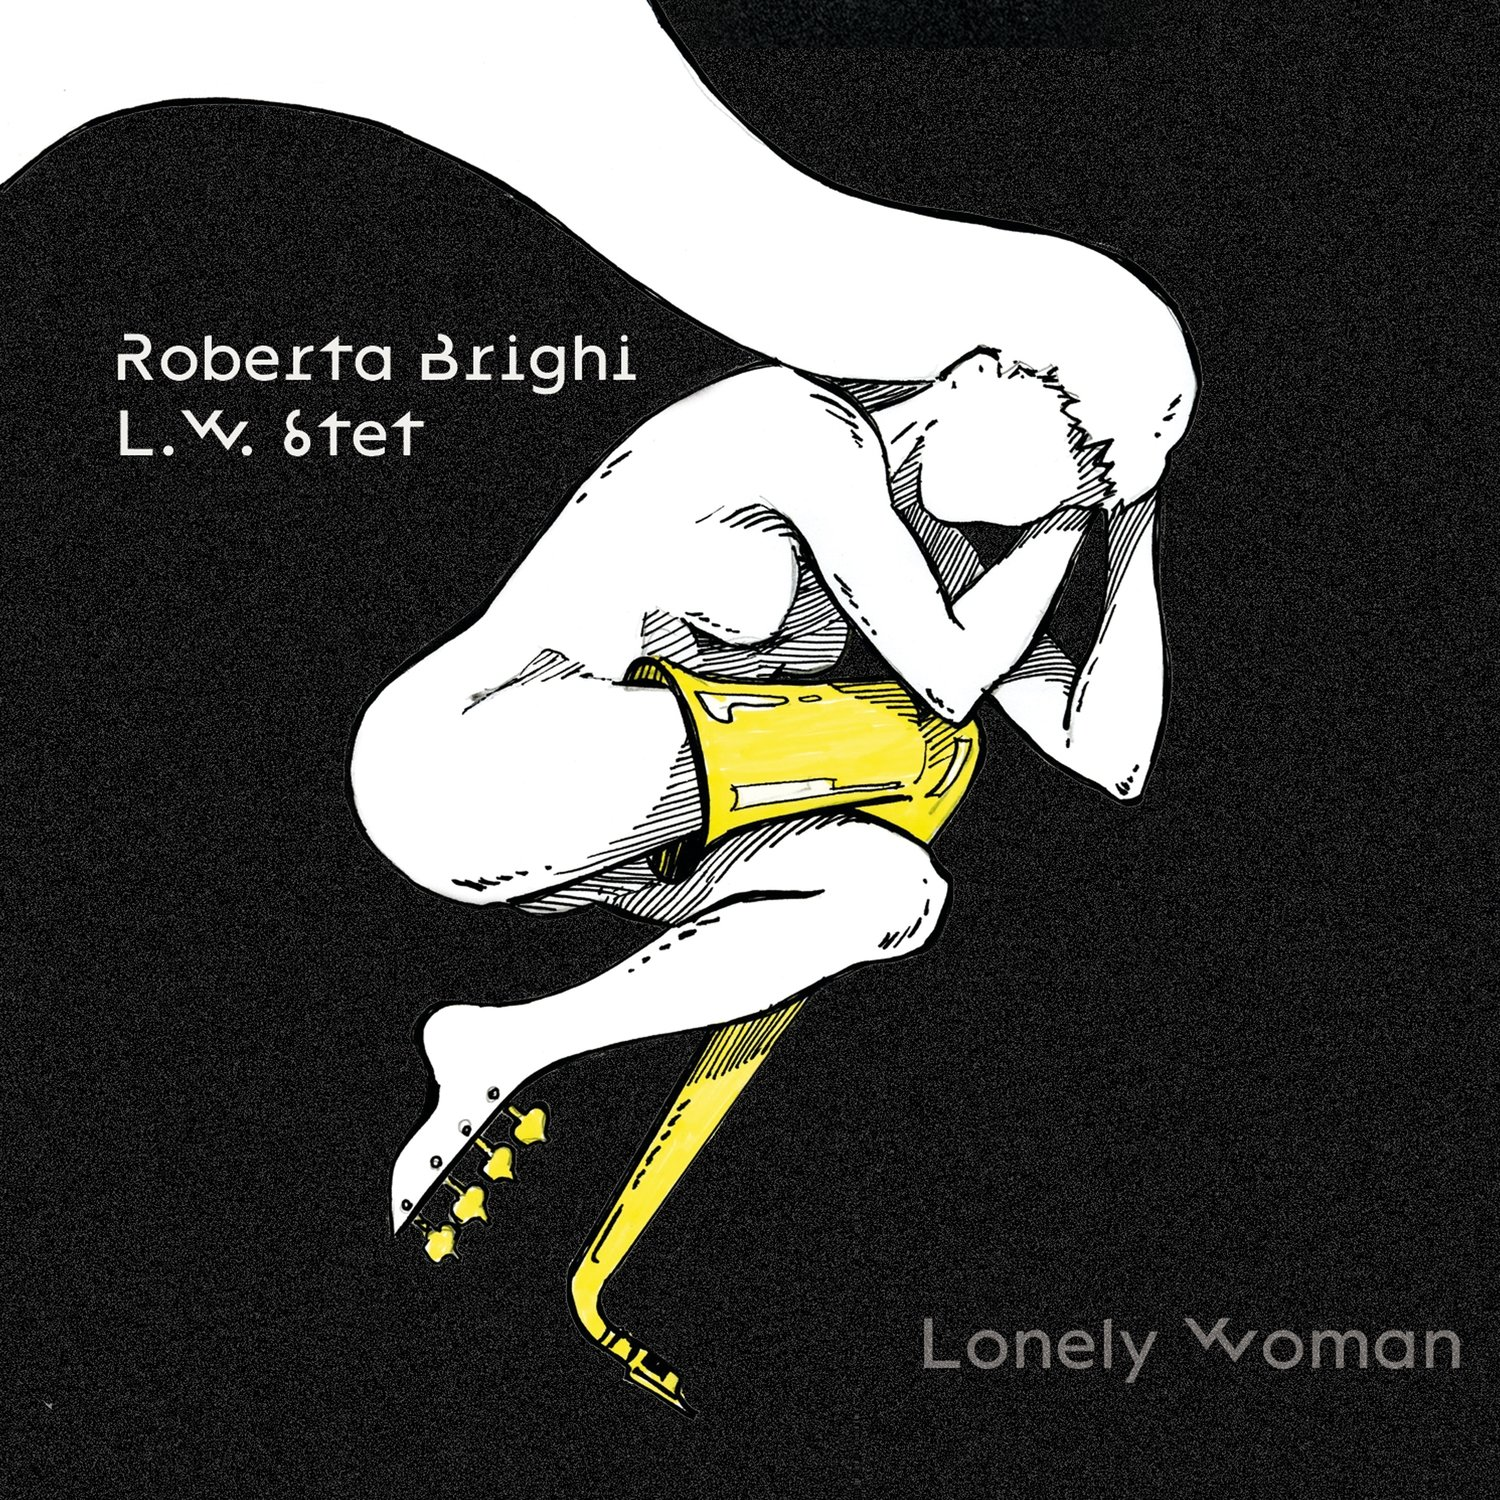 "ROBERTA BRIGHI L.W. 6TET  ""Lonely woman"""